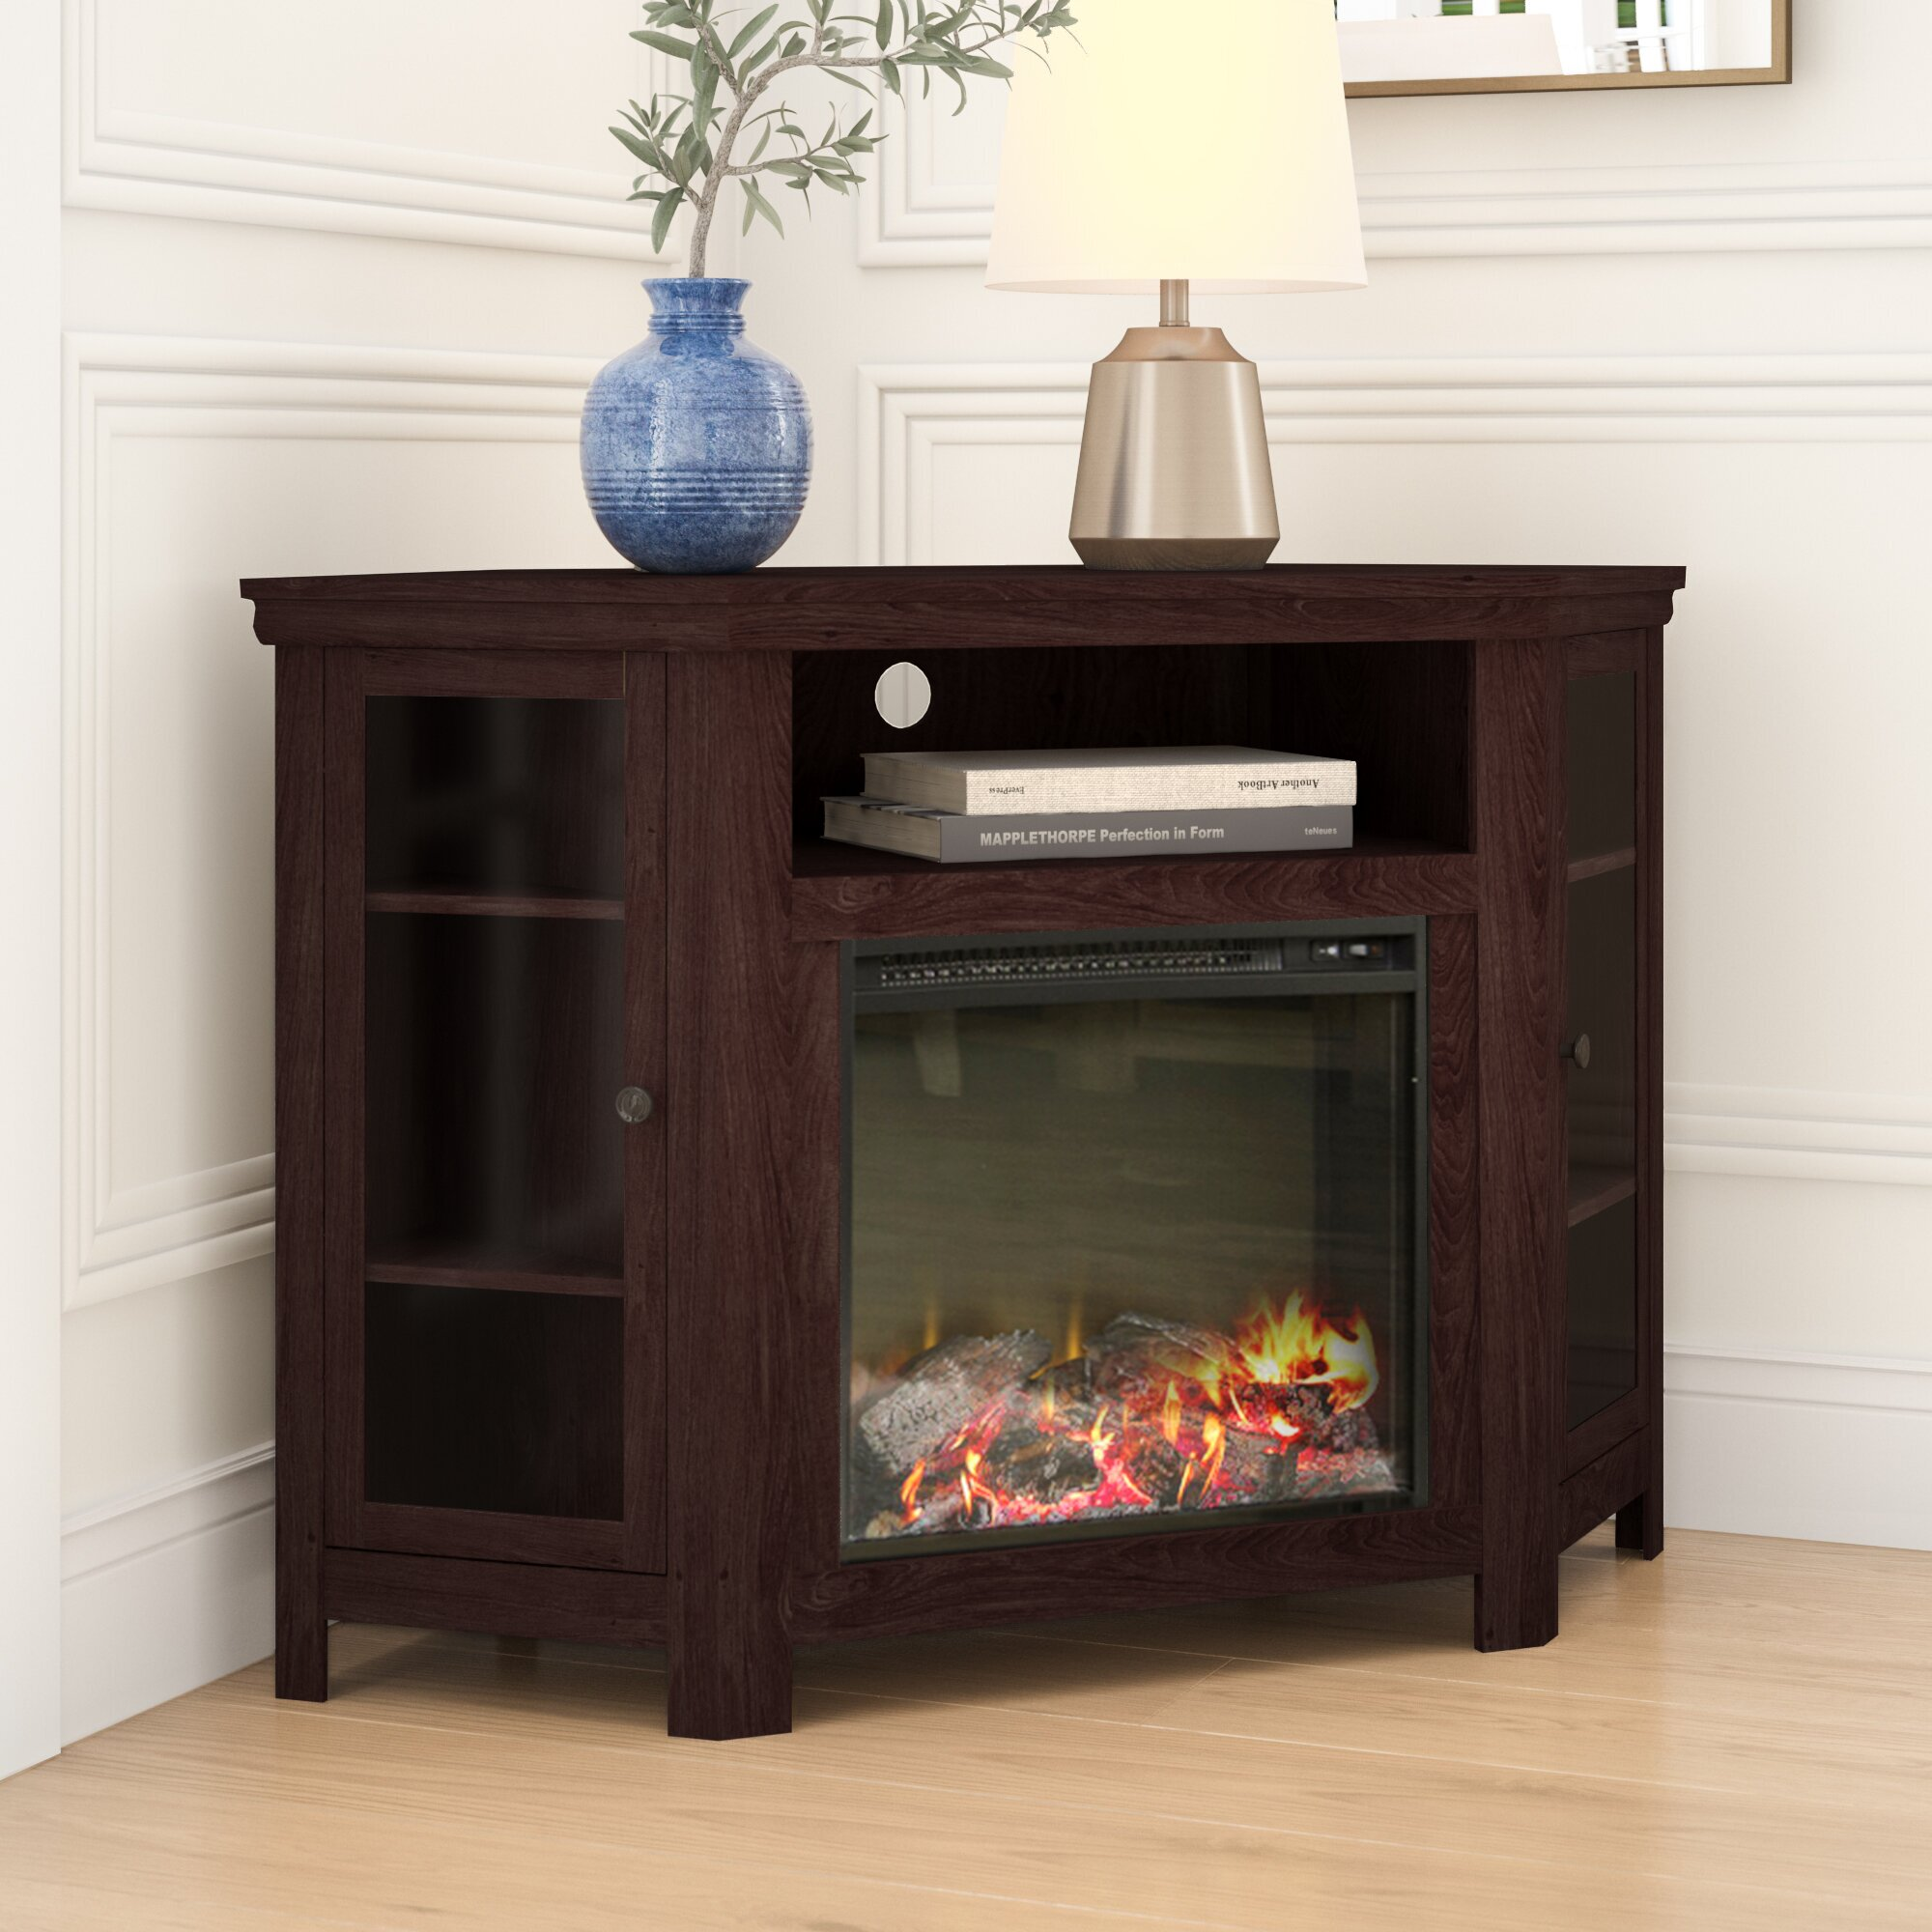 Mistana Tieton Tv Stand For Tvs Up To 48 With Fireplace Reviews